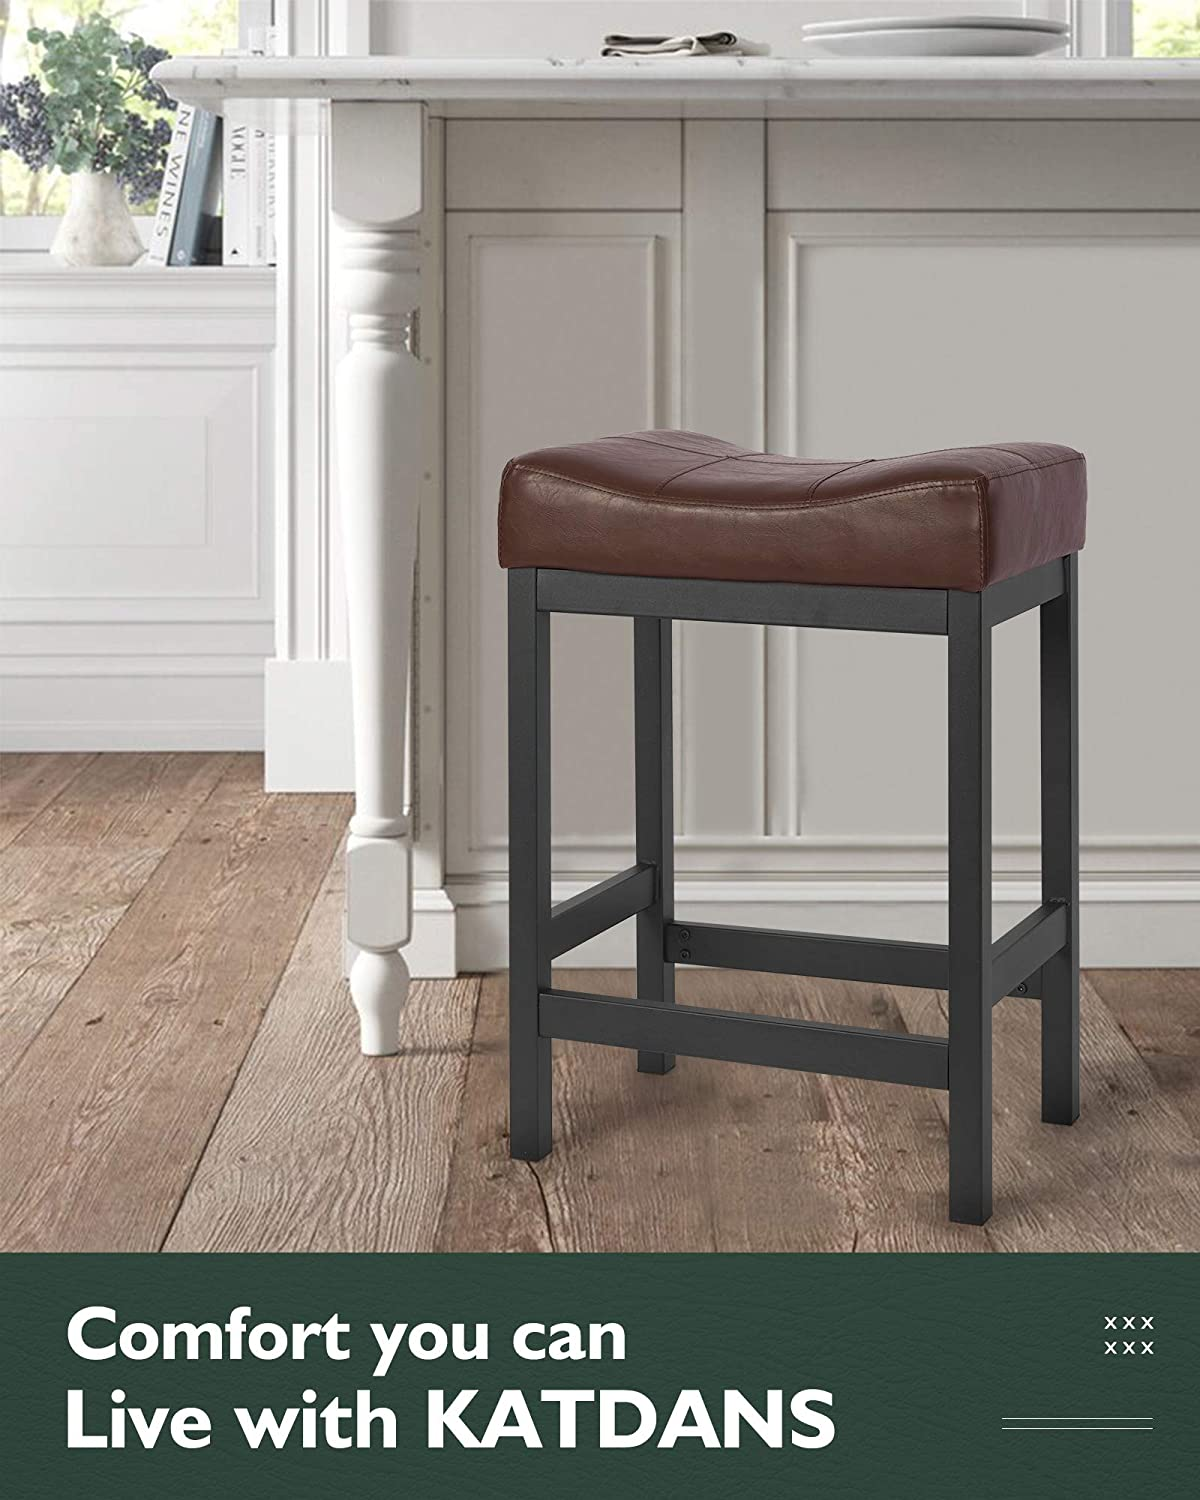 Buy Katdans Bar Stools Set Of 2 Counter Height Stools 24 Inch Saddle Stool Pu Leather Kitchen Stools Brown Black Metal Base Ks861p B Online In Italy B08xjrk9x5